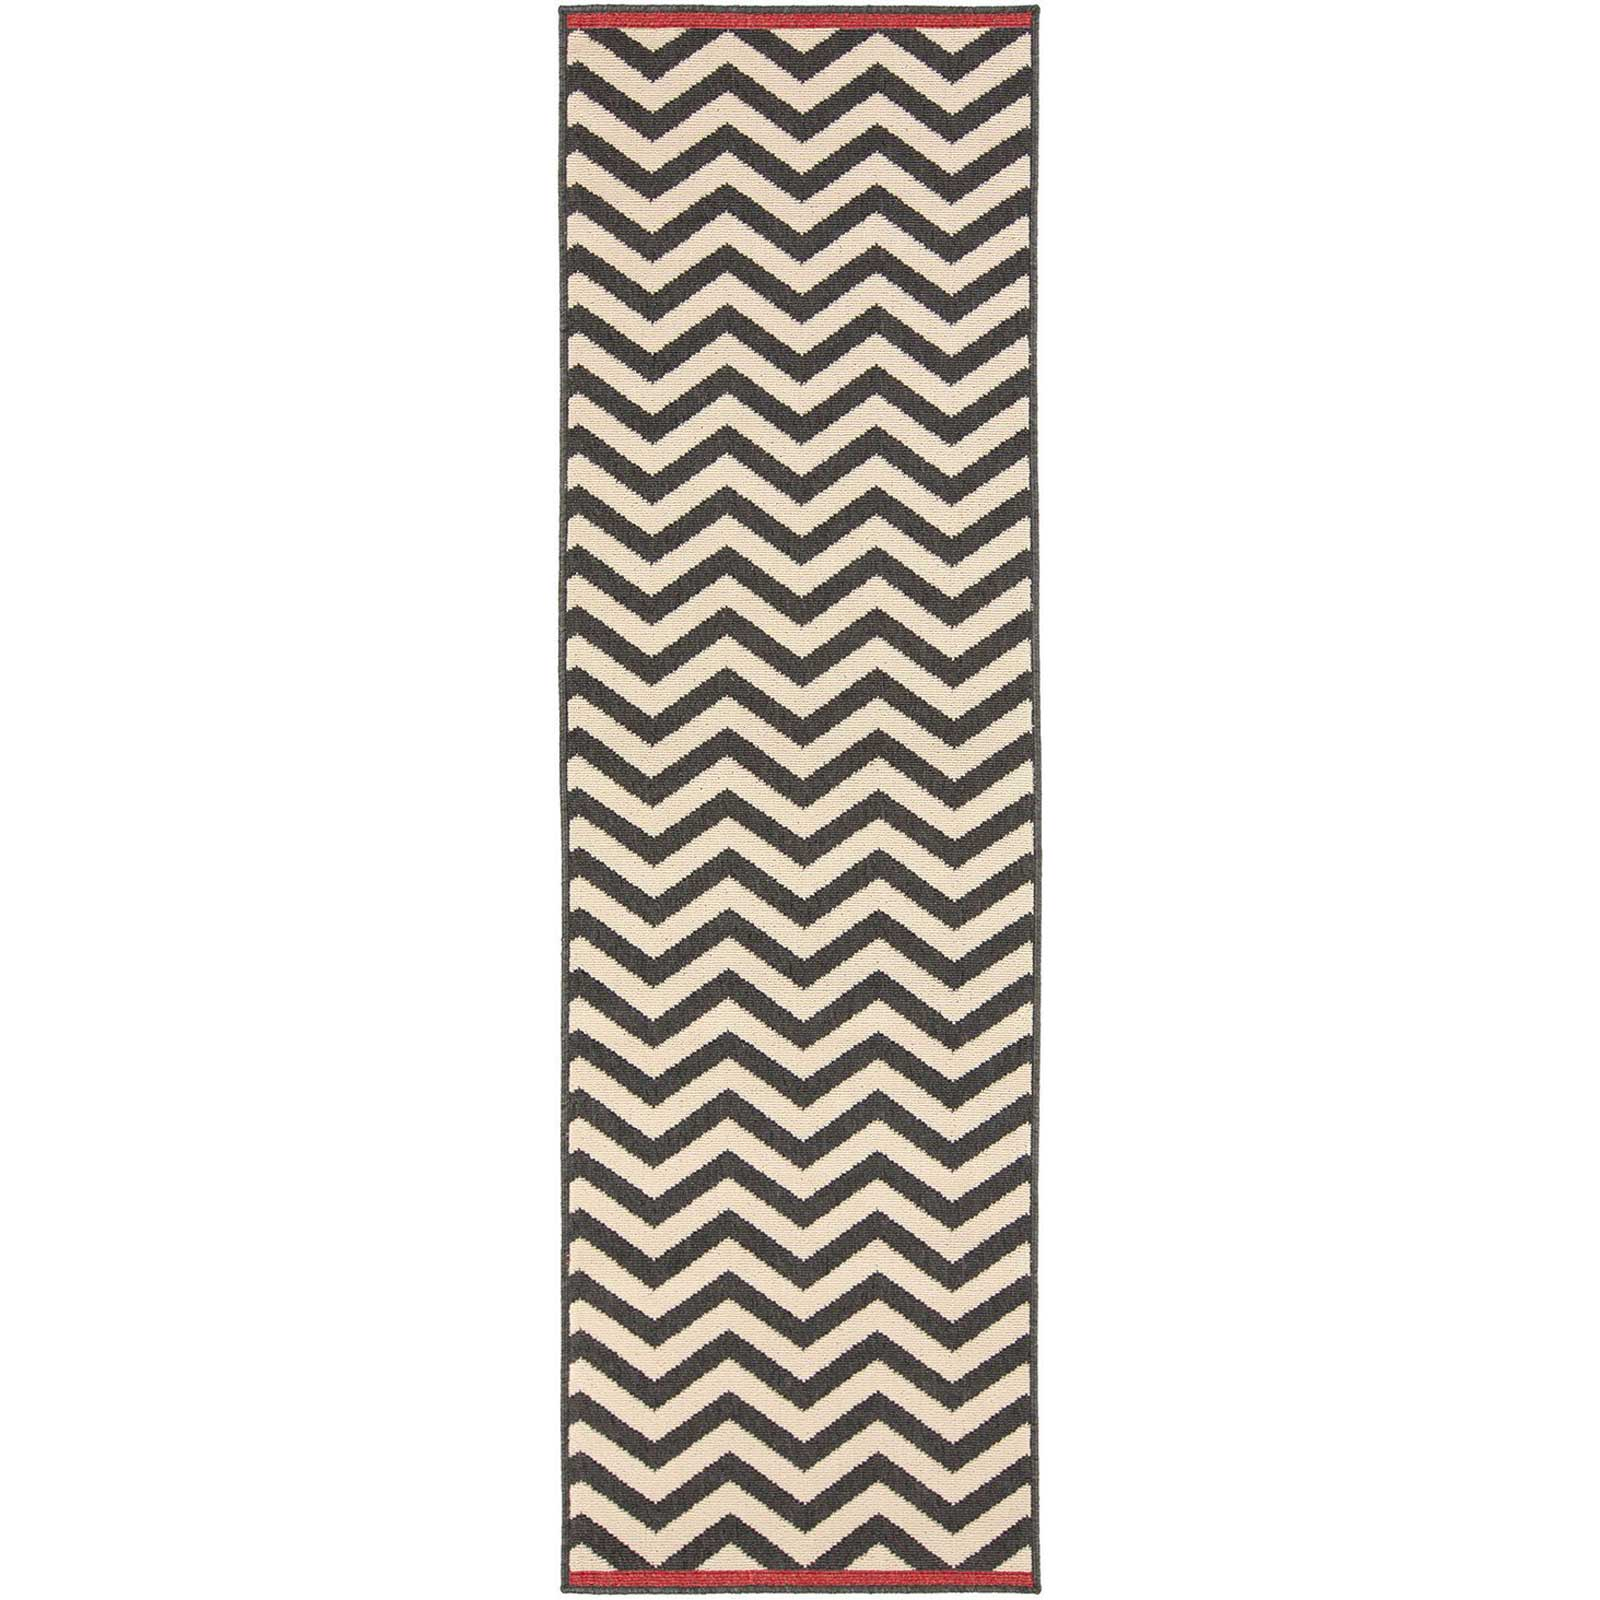 Alfresco Black/Beige Runner Rug